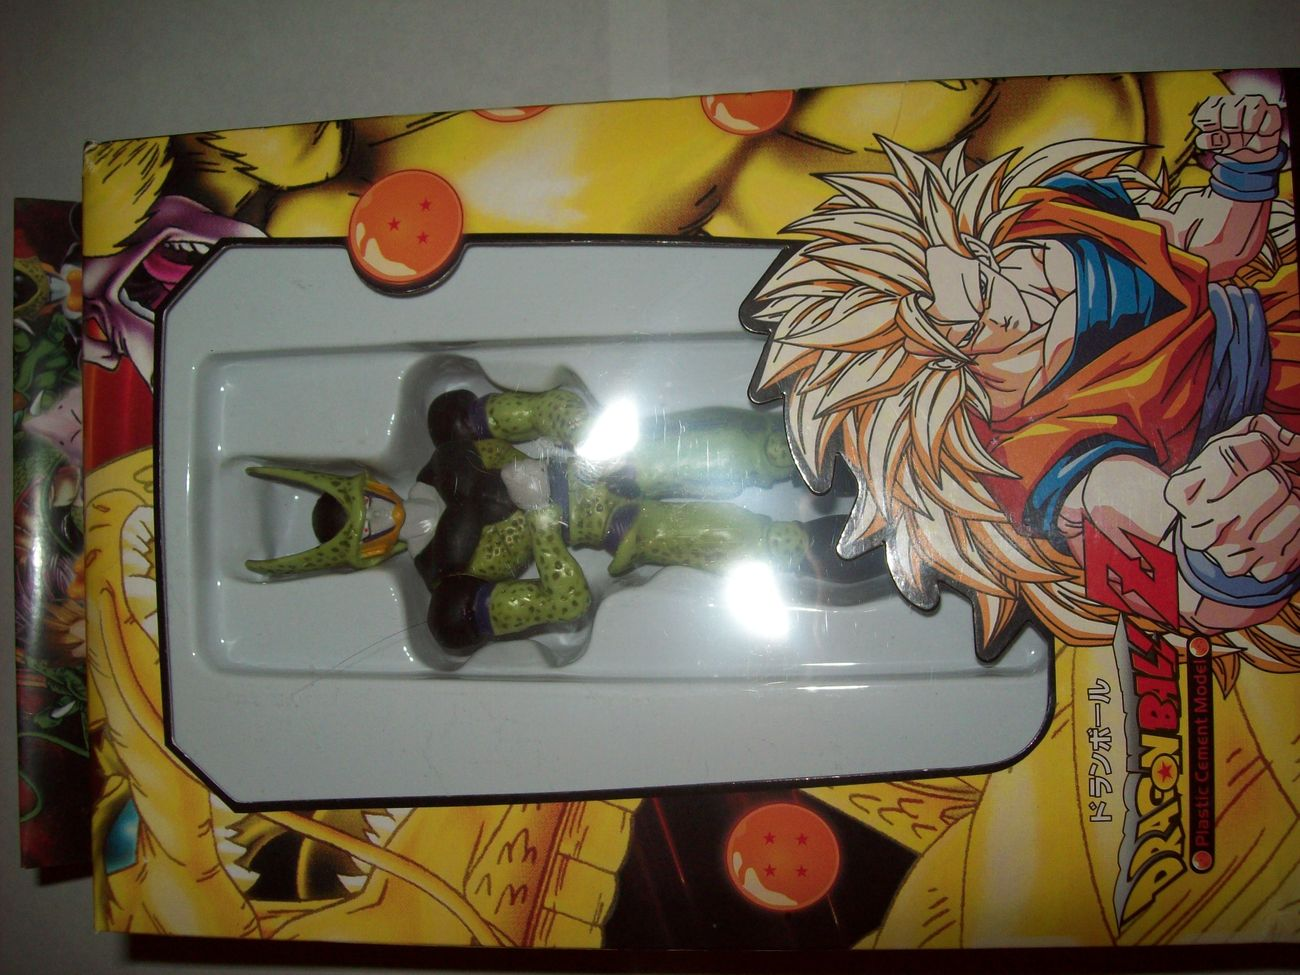 "cell perfect 5"" dragonball z plastic cement model figure in box"